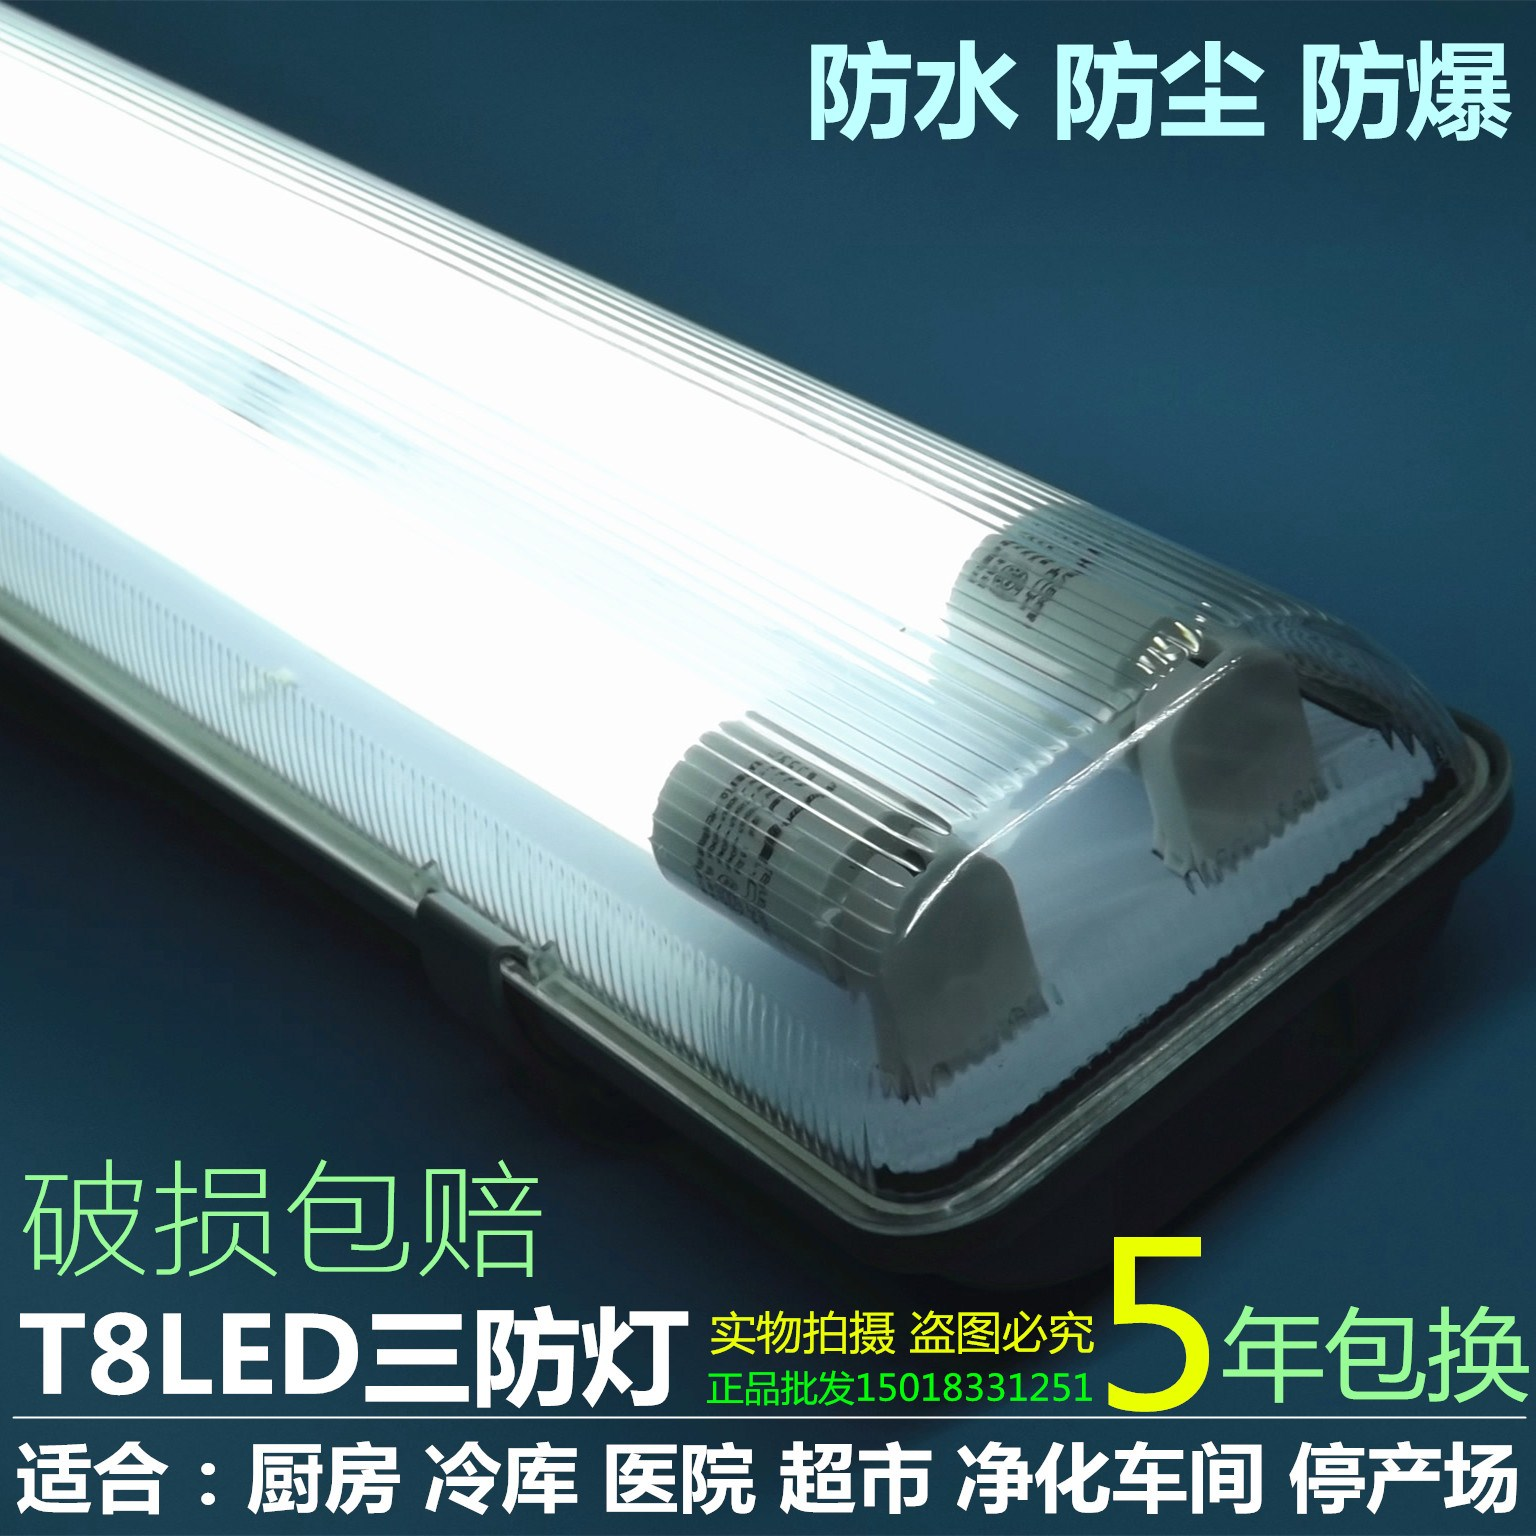 Waterproof, dustproof, explosion-proof LED three proof lamp T81.2 meters, double tube purification fluorescent lamp, supermarket cold storage, kitchen light package mail